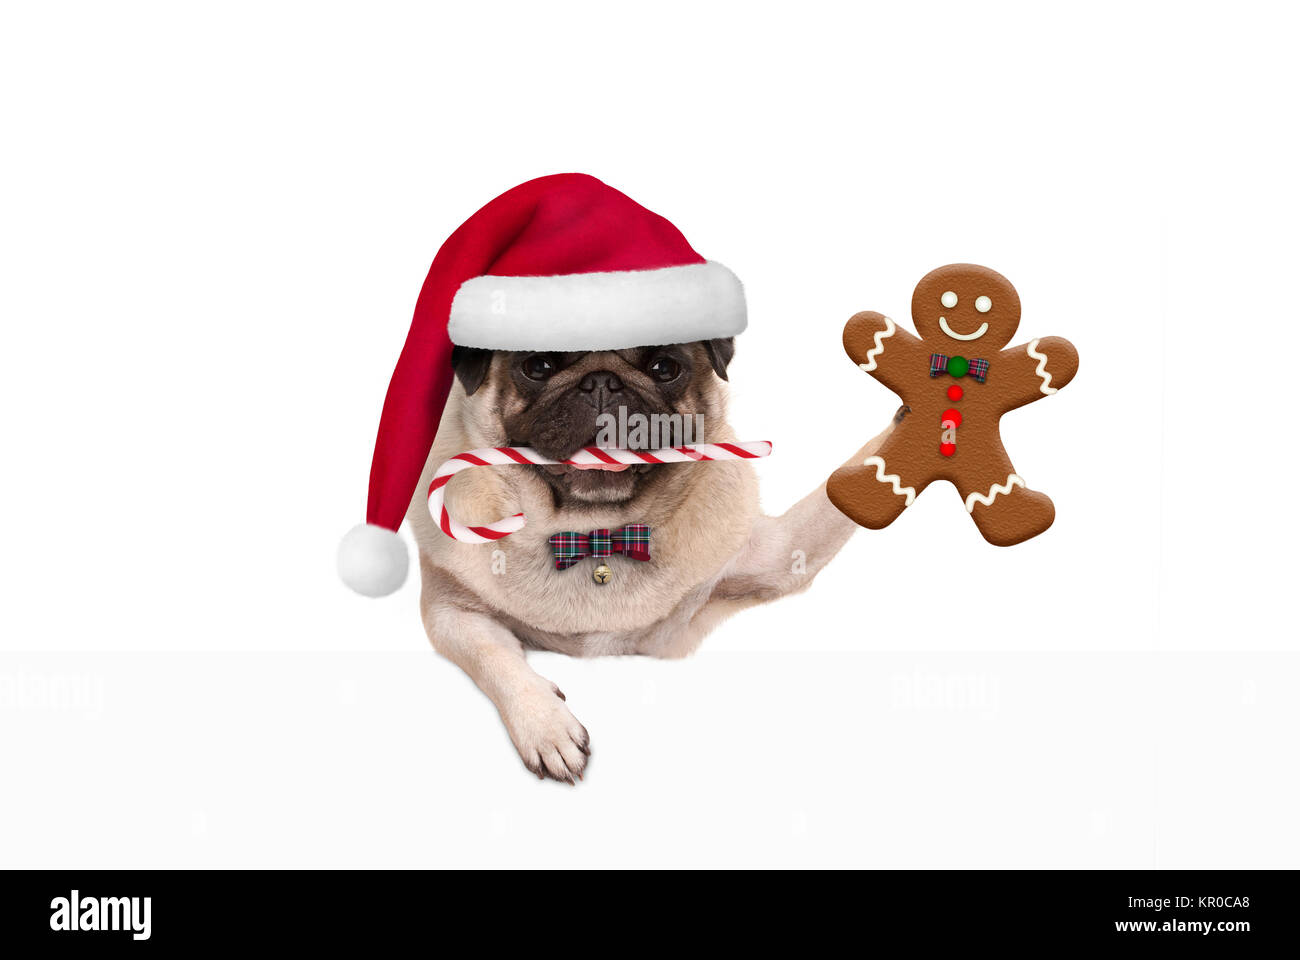 cute Christmas pug dog with santa hat and candy cane, holding up gingerbread man cookie, hanging on white banner, - Stock Image